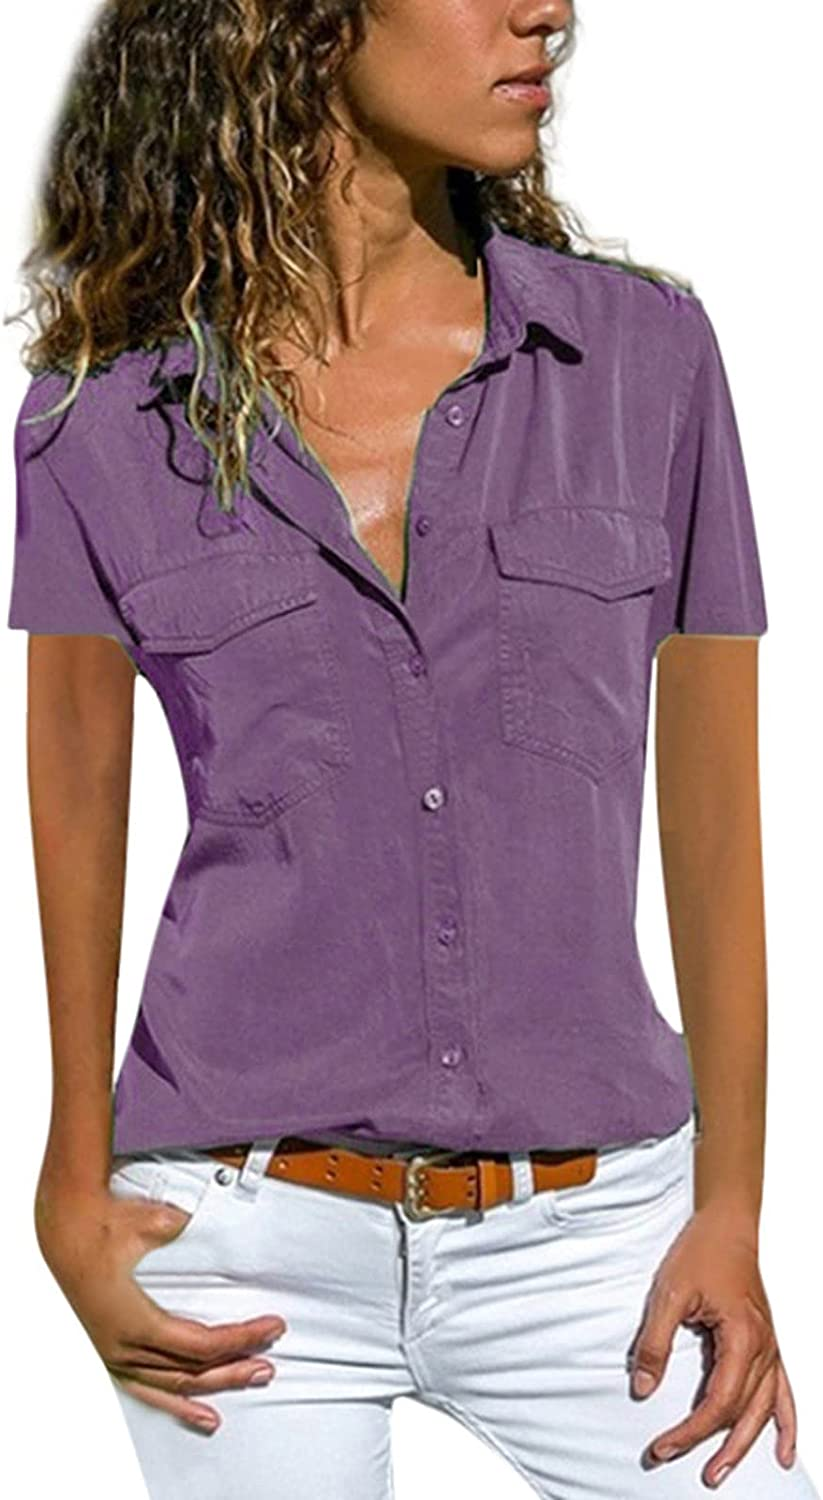 Button Down Blouses for Women,Women's V Neck Shirts Shorts Sleeve Blouse Roll Up Cuffed Sleeve Work Plain Tops J